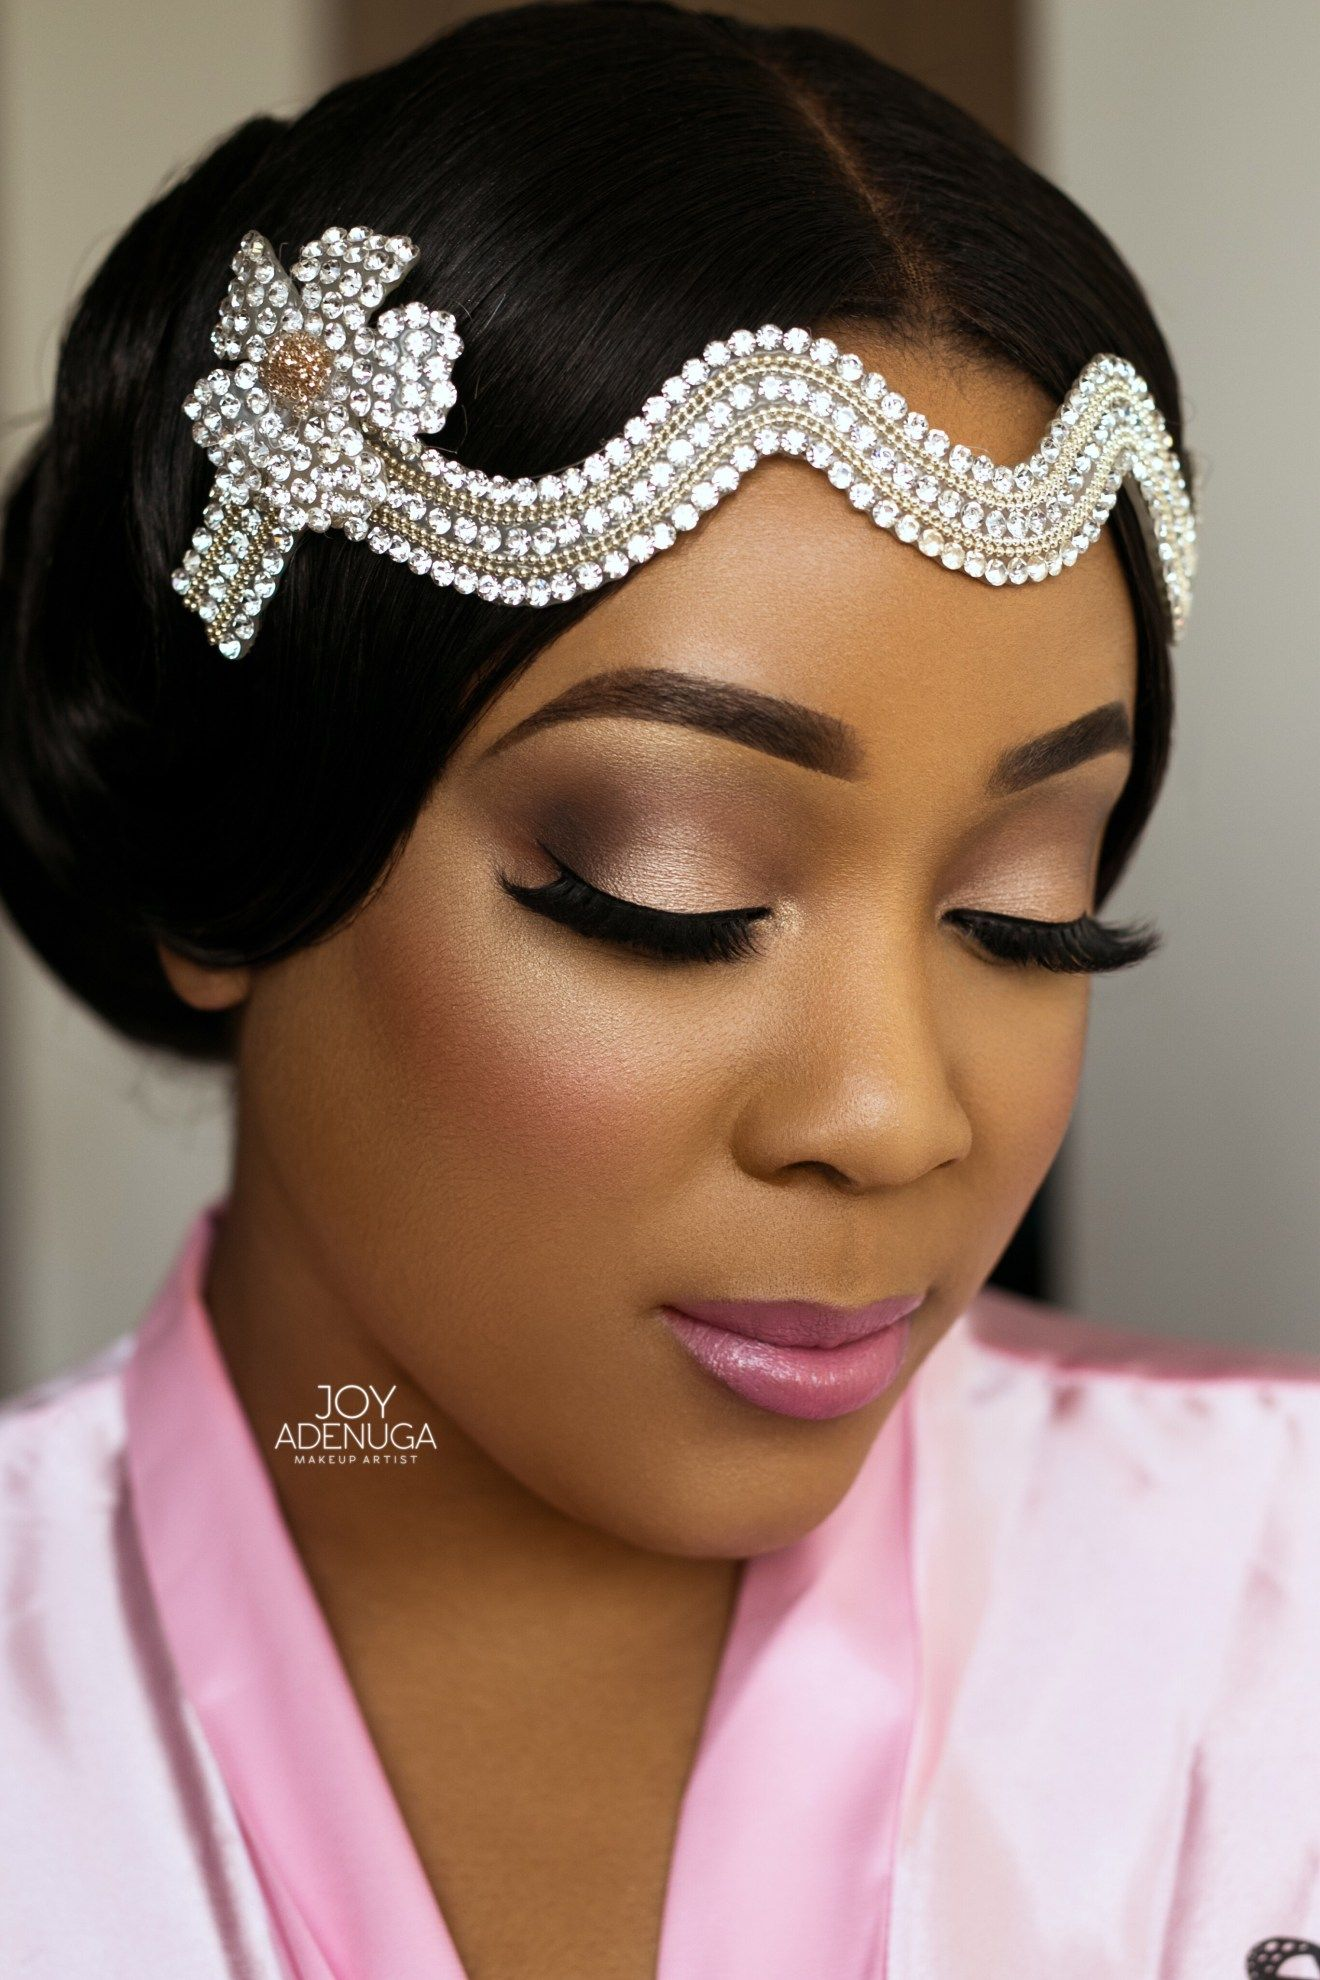 Cherishs Wedding, Joy Adenuga, Black Bride, Black Bridal -3952